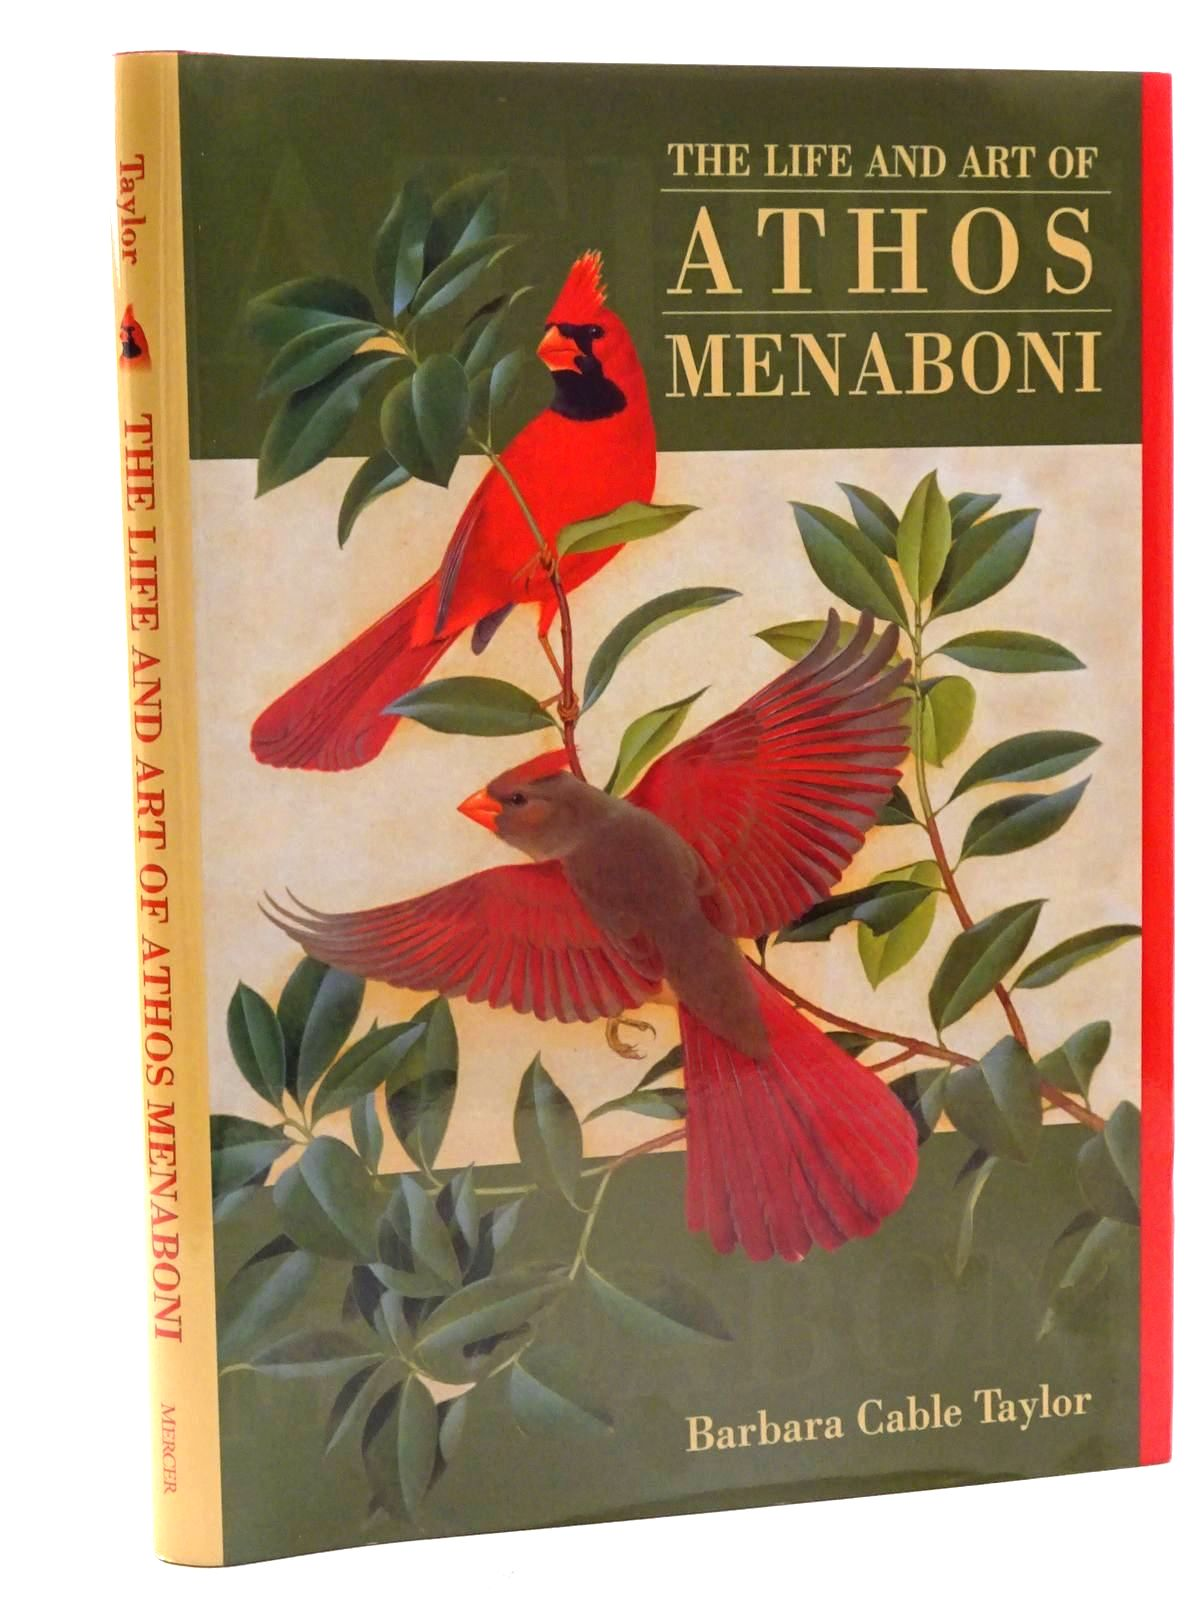 Photo of THE LIFE AND ART OF ATHOS MENABONI written by Taylor, Barbara Cable published by Mercer University Press (STOCK CODE: 1610668)  for sale by Stella & Rose's Books